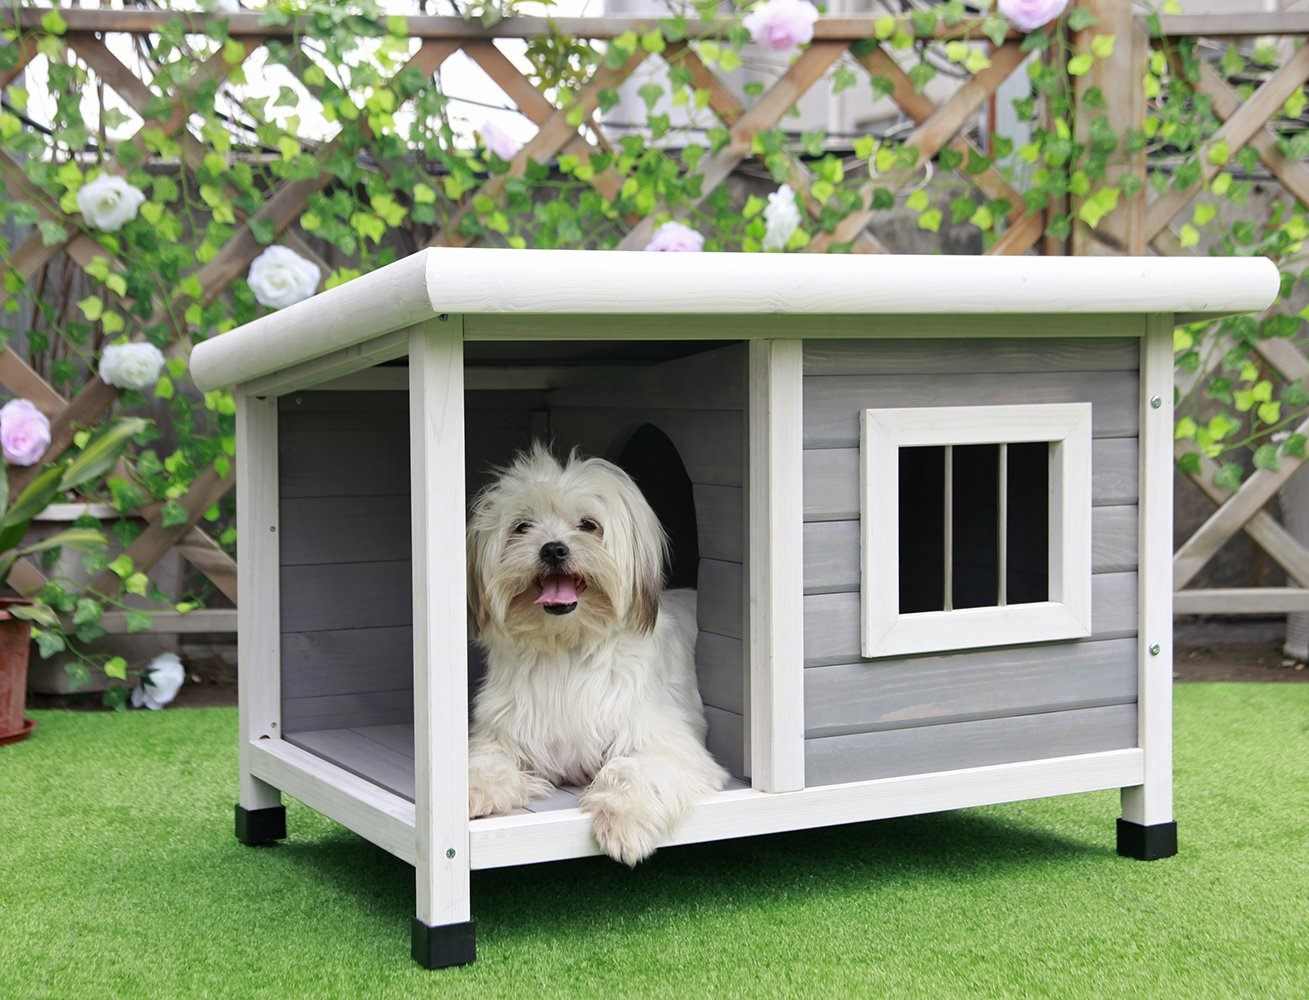 Amazon.com : Petsfit Outdoor Wooden Dog House for Small Dogs, Light Grey,  Small/33 L x 25